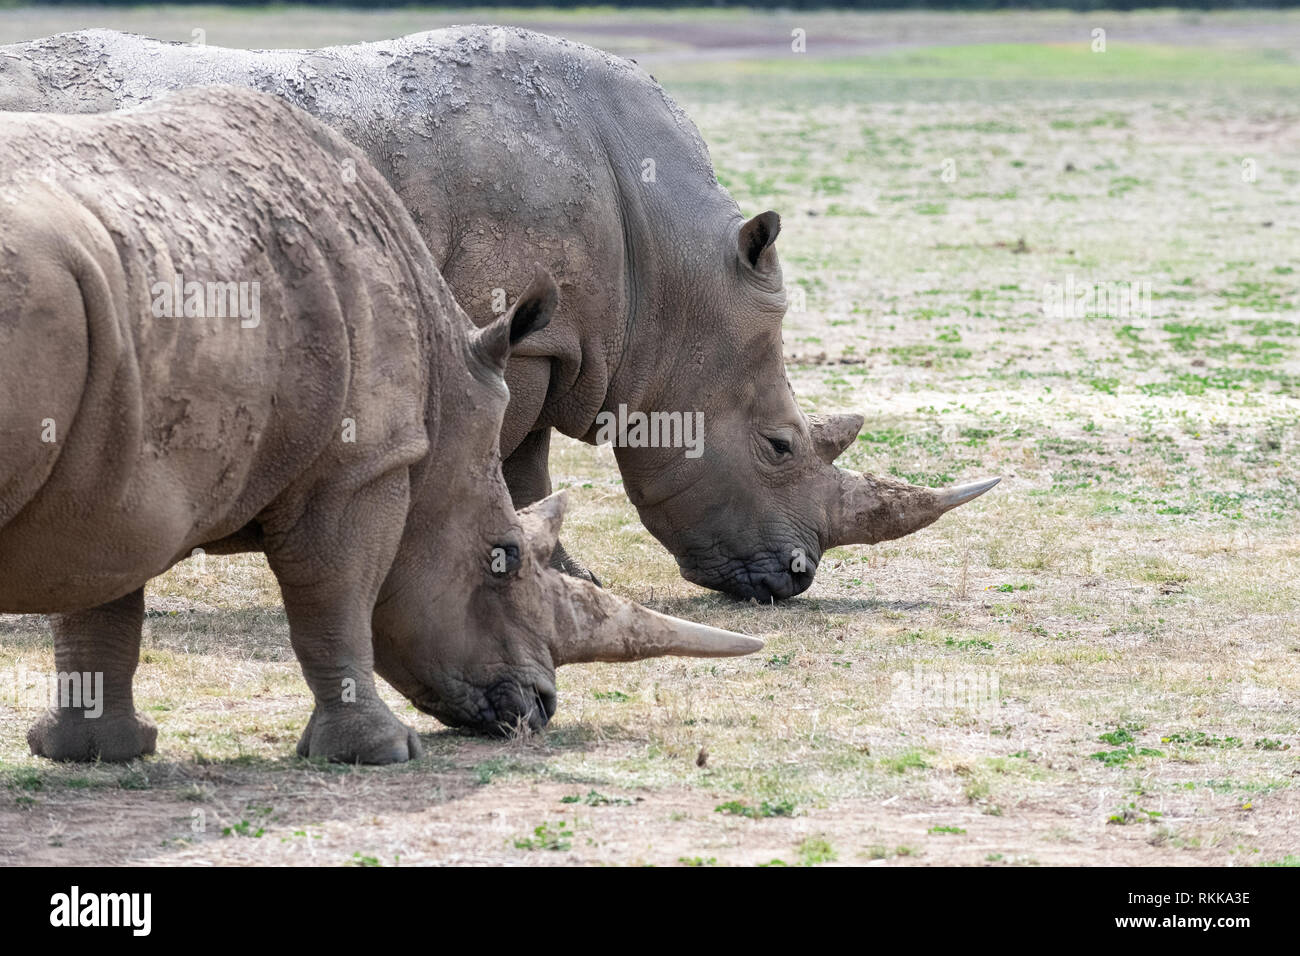 White rhinos at the Werribee Open Range Zoo.  The species is considered near threatened. - Stock Image